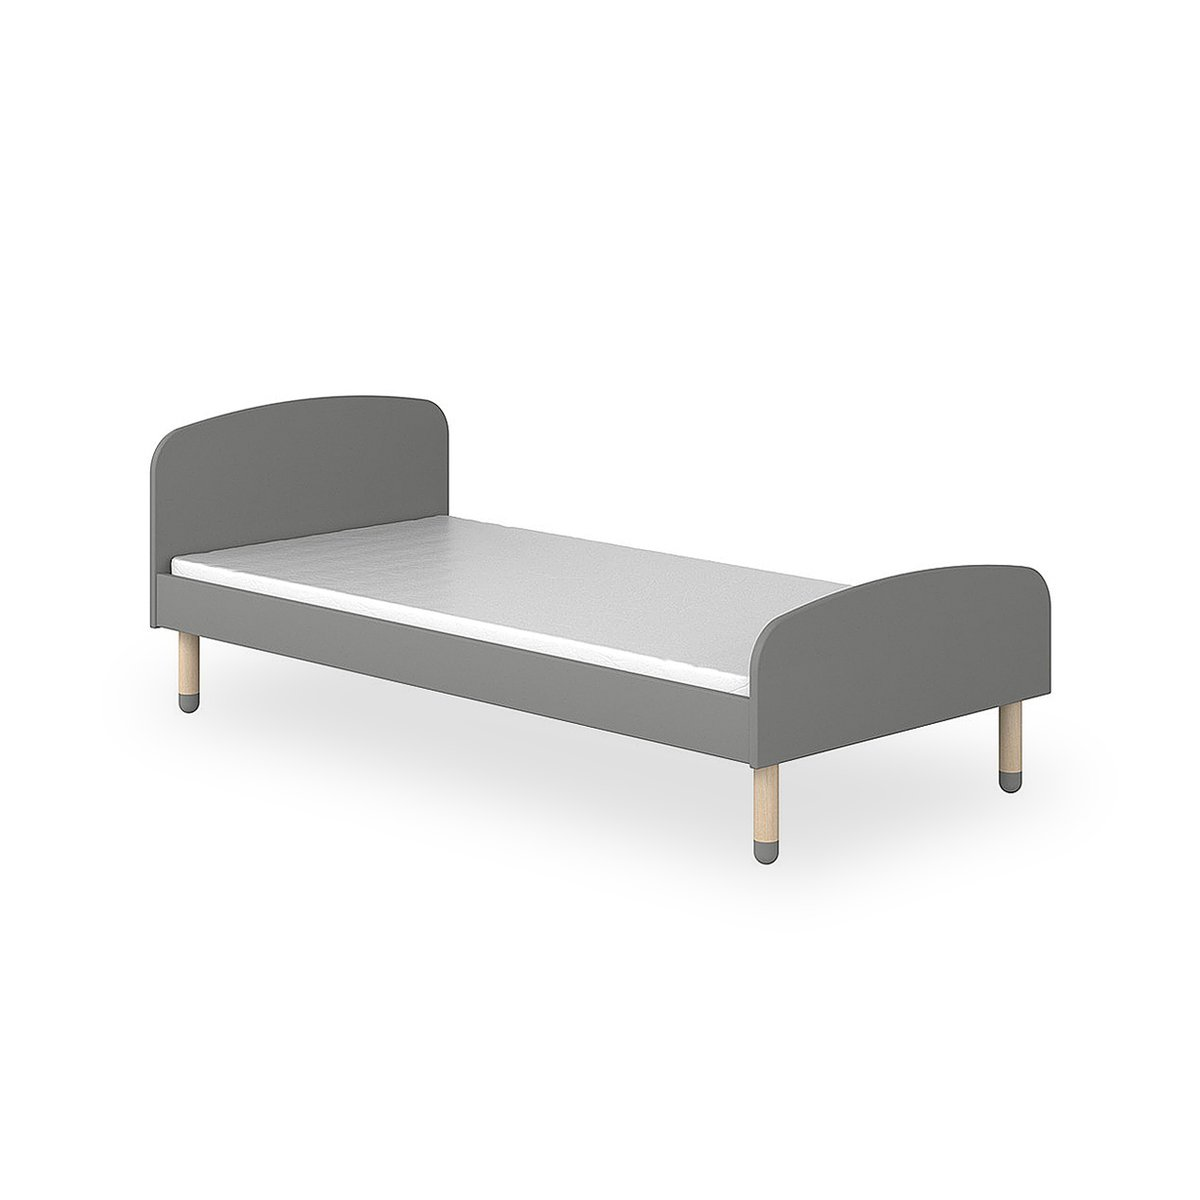 Chaise Longue Letto Singolo.Letto Singolo Play L 204 Cm By Flexa Lovethesign